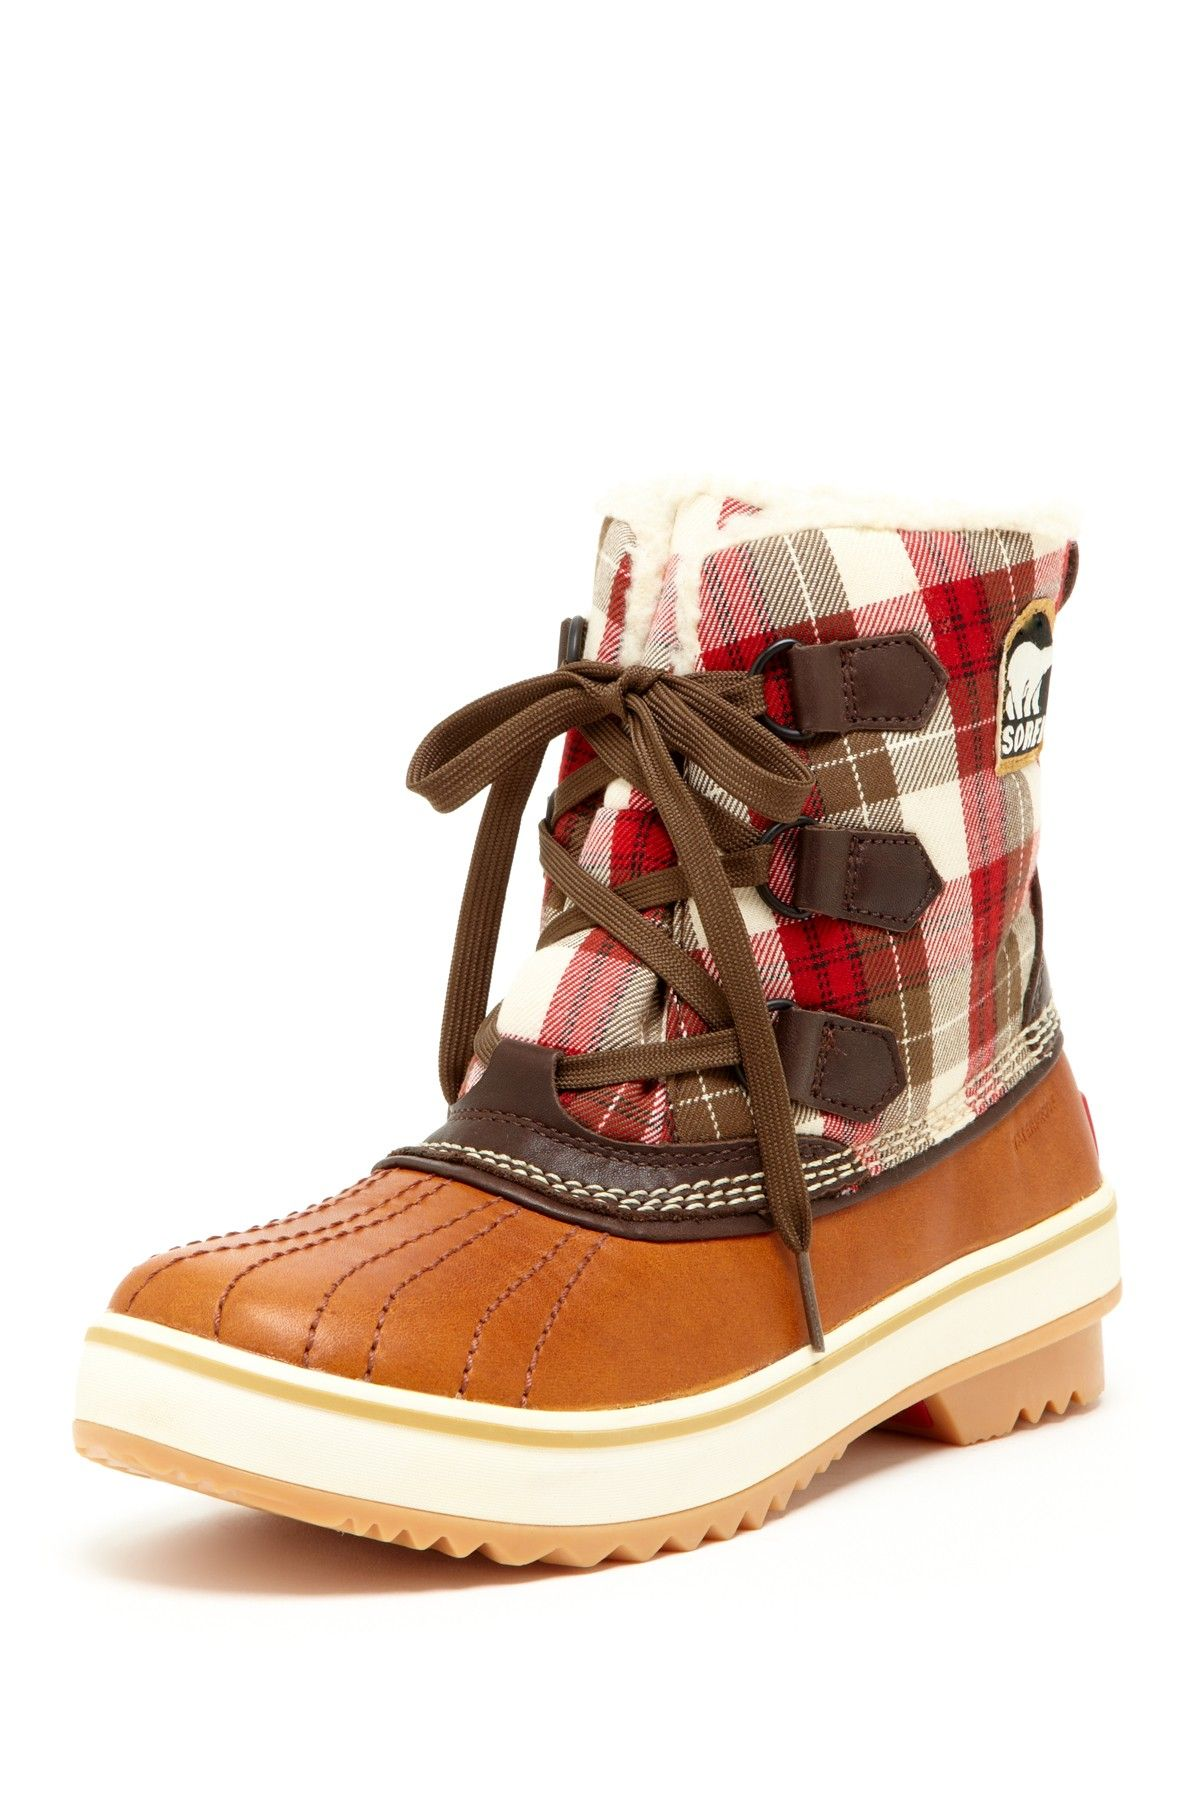 Sorel - Tivoli Plaid 2 Winter Boot | 58.00  why am i pinning boots on my wedding board? because im having a winter wedding!